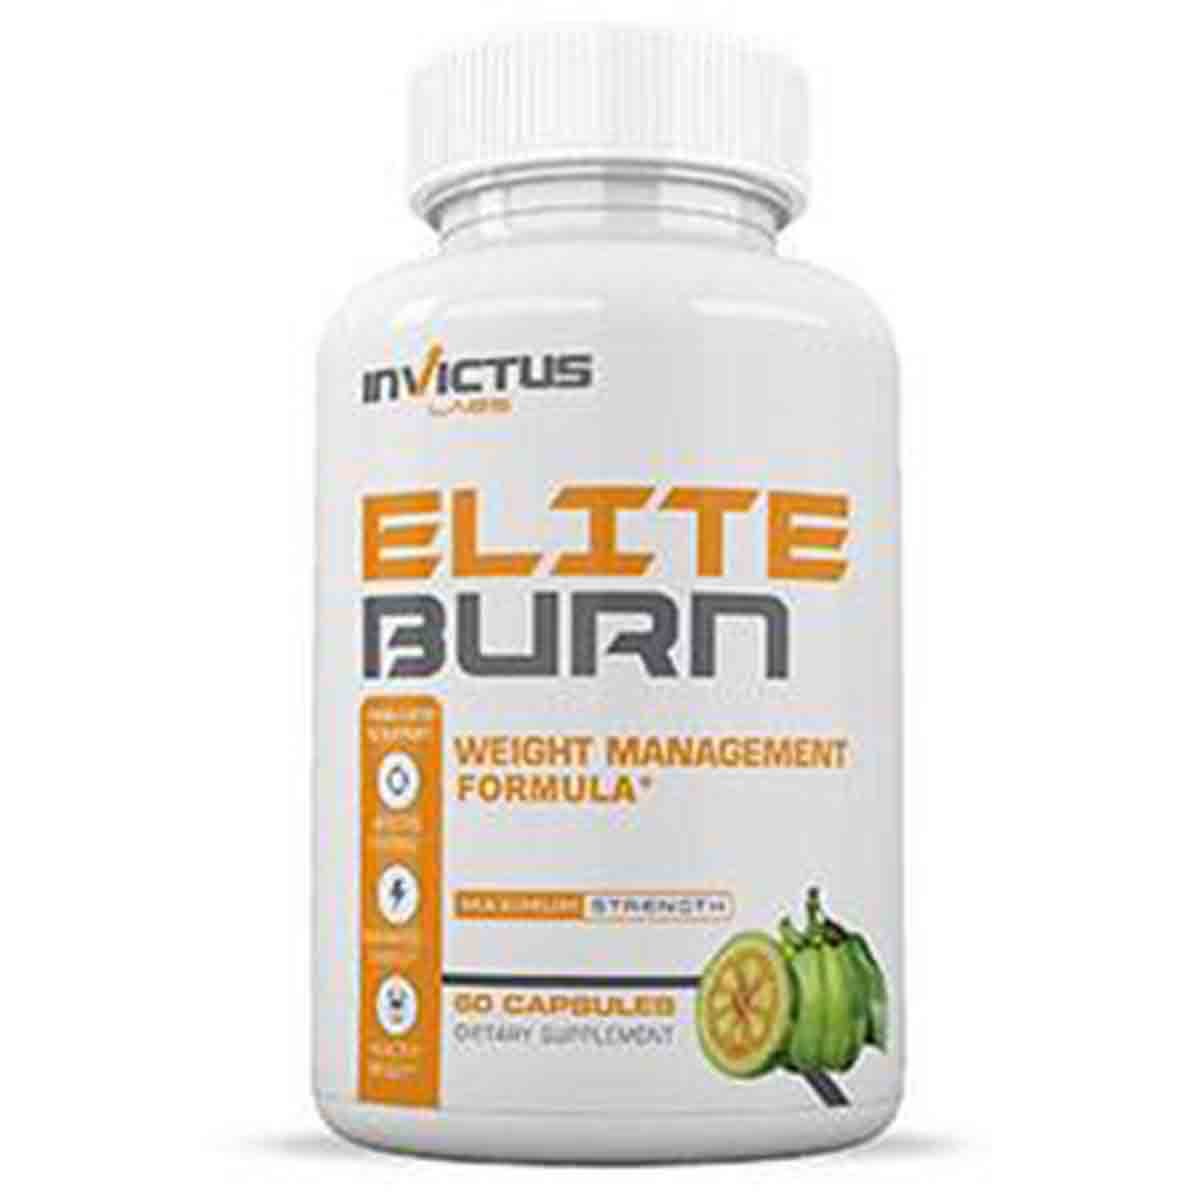 Invictus Labs Elite Burn